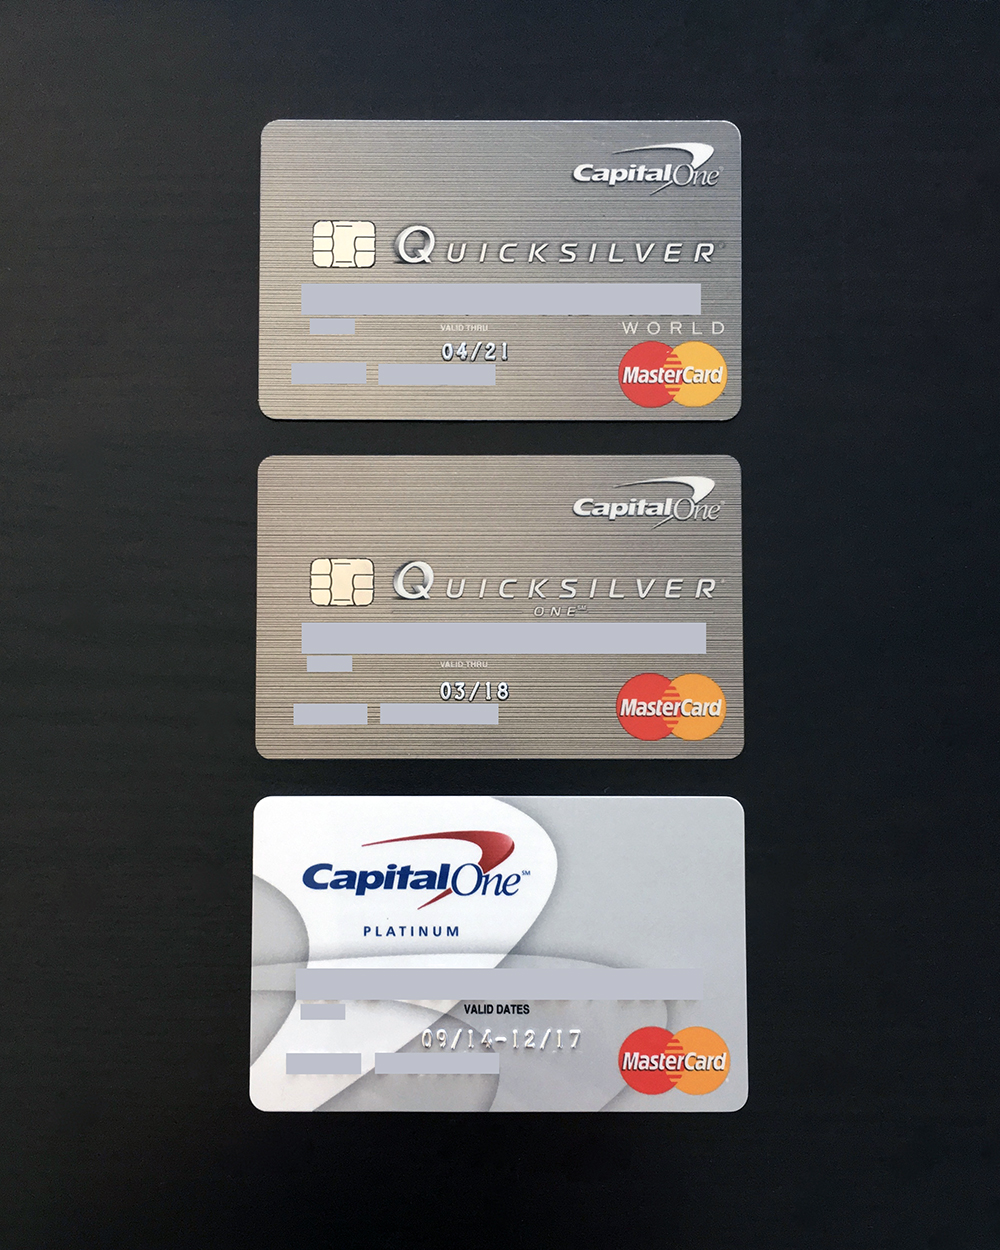 Capital One Progress; From Platinum to World - myFICO® Forums